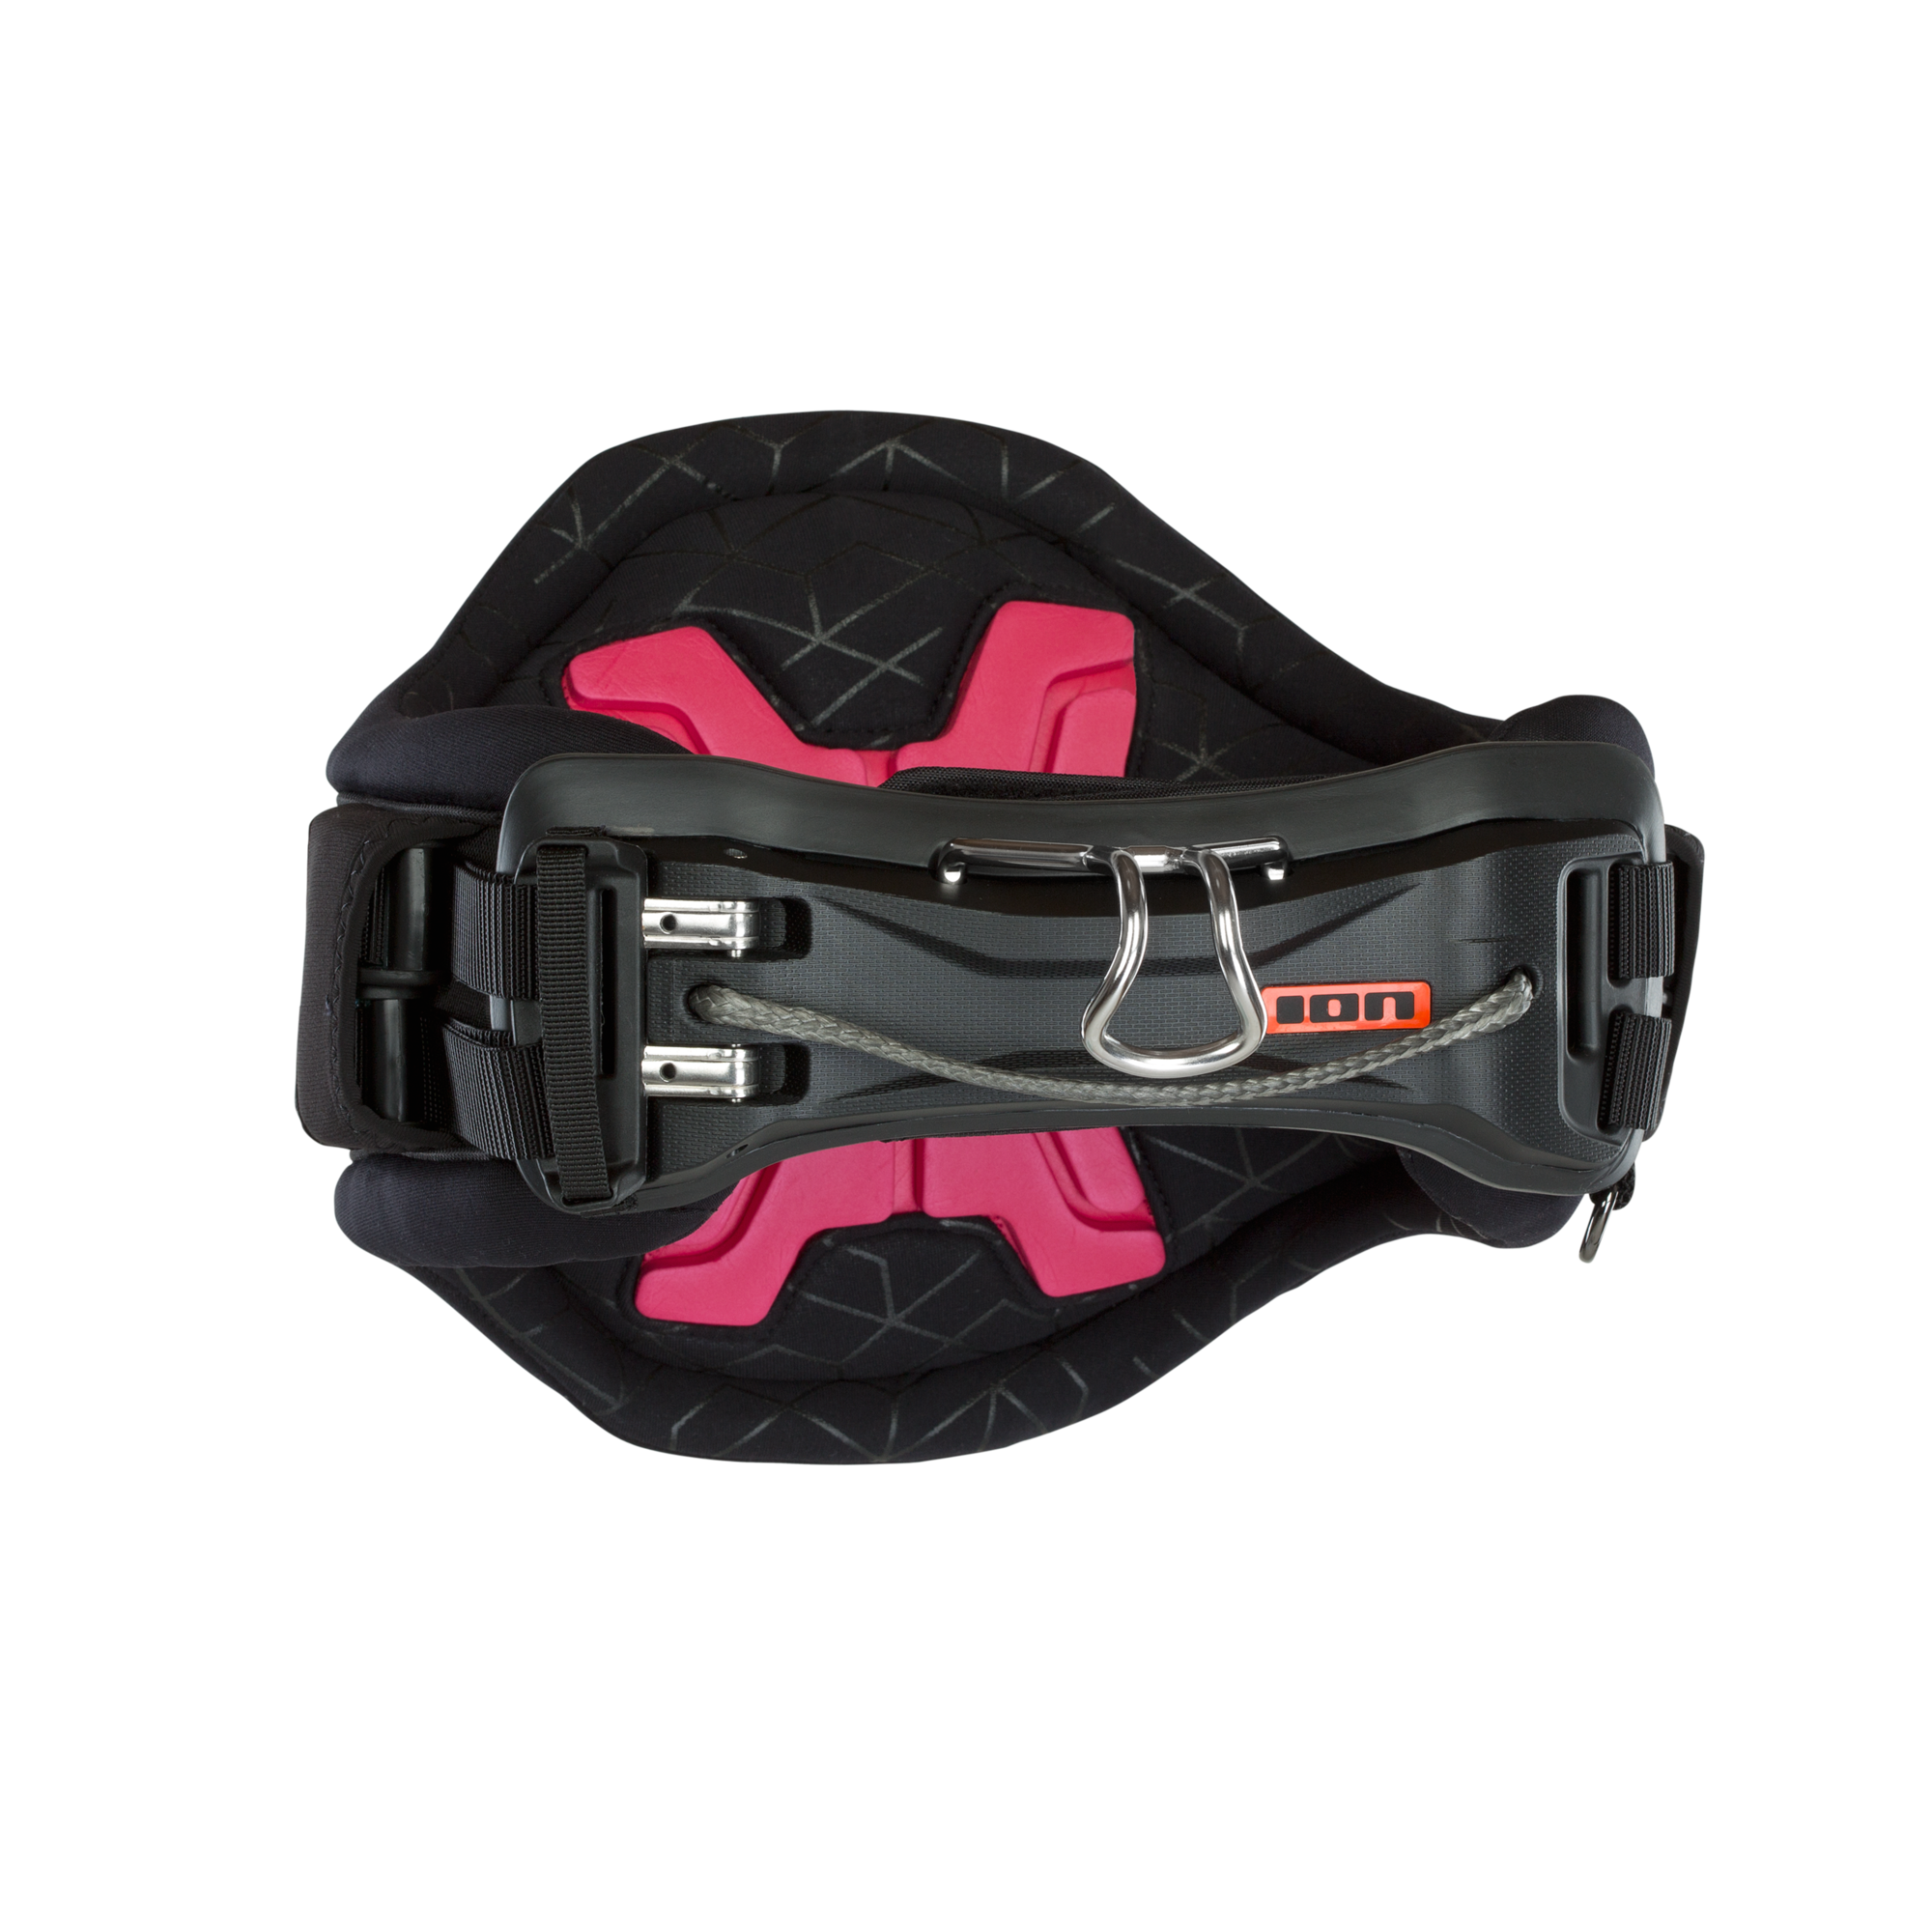 ION NOVA CS 15 WAIST HARNESS